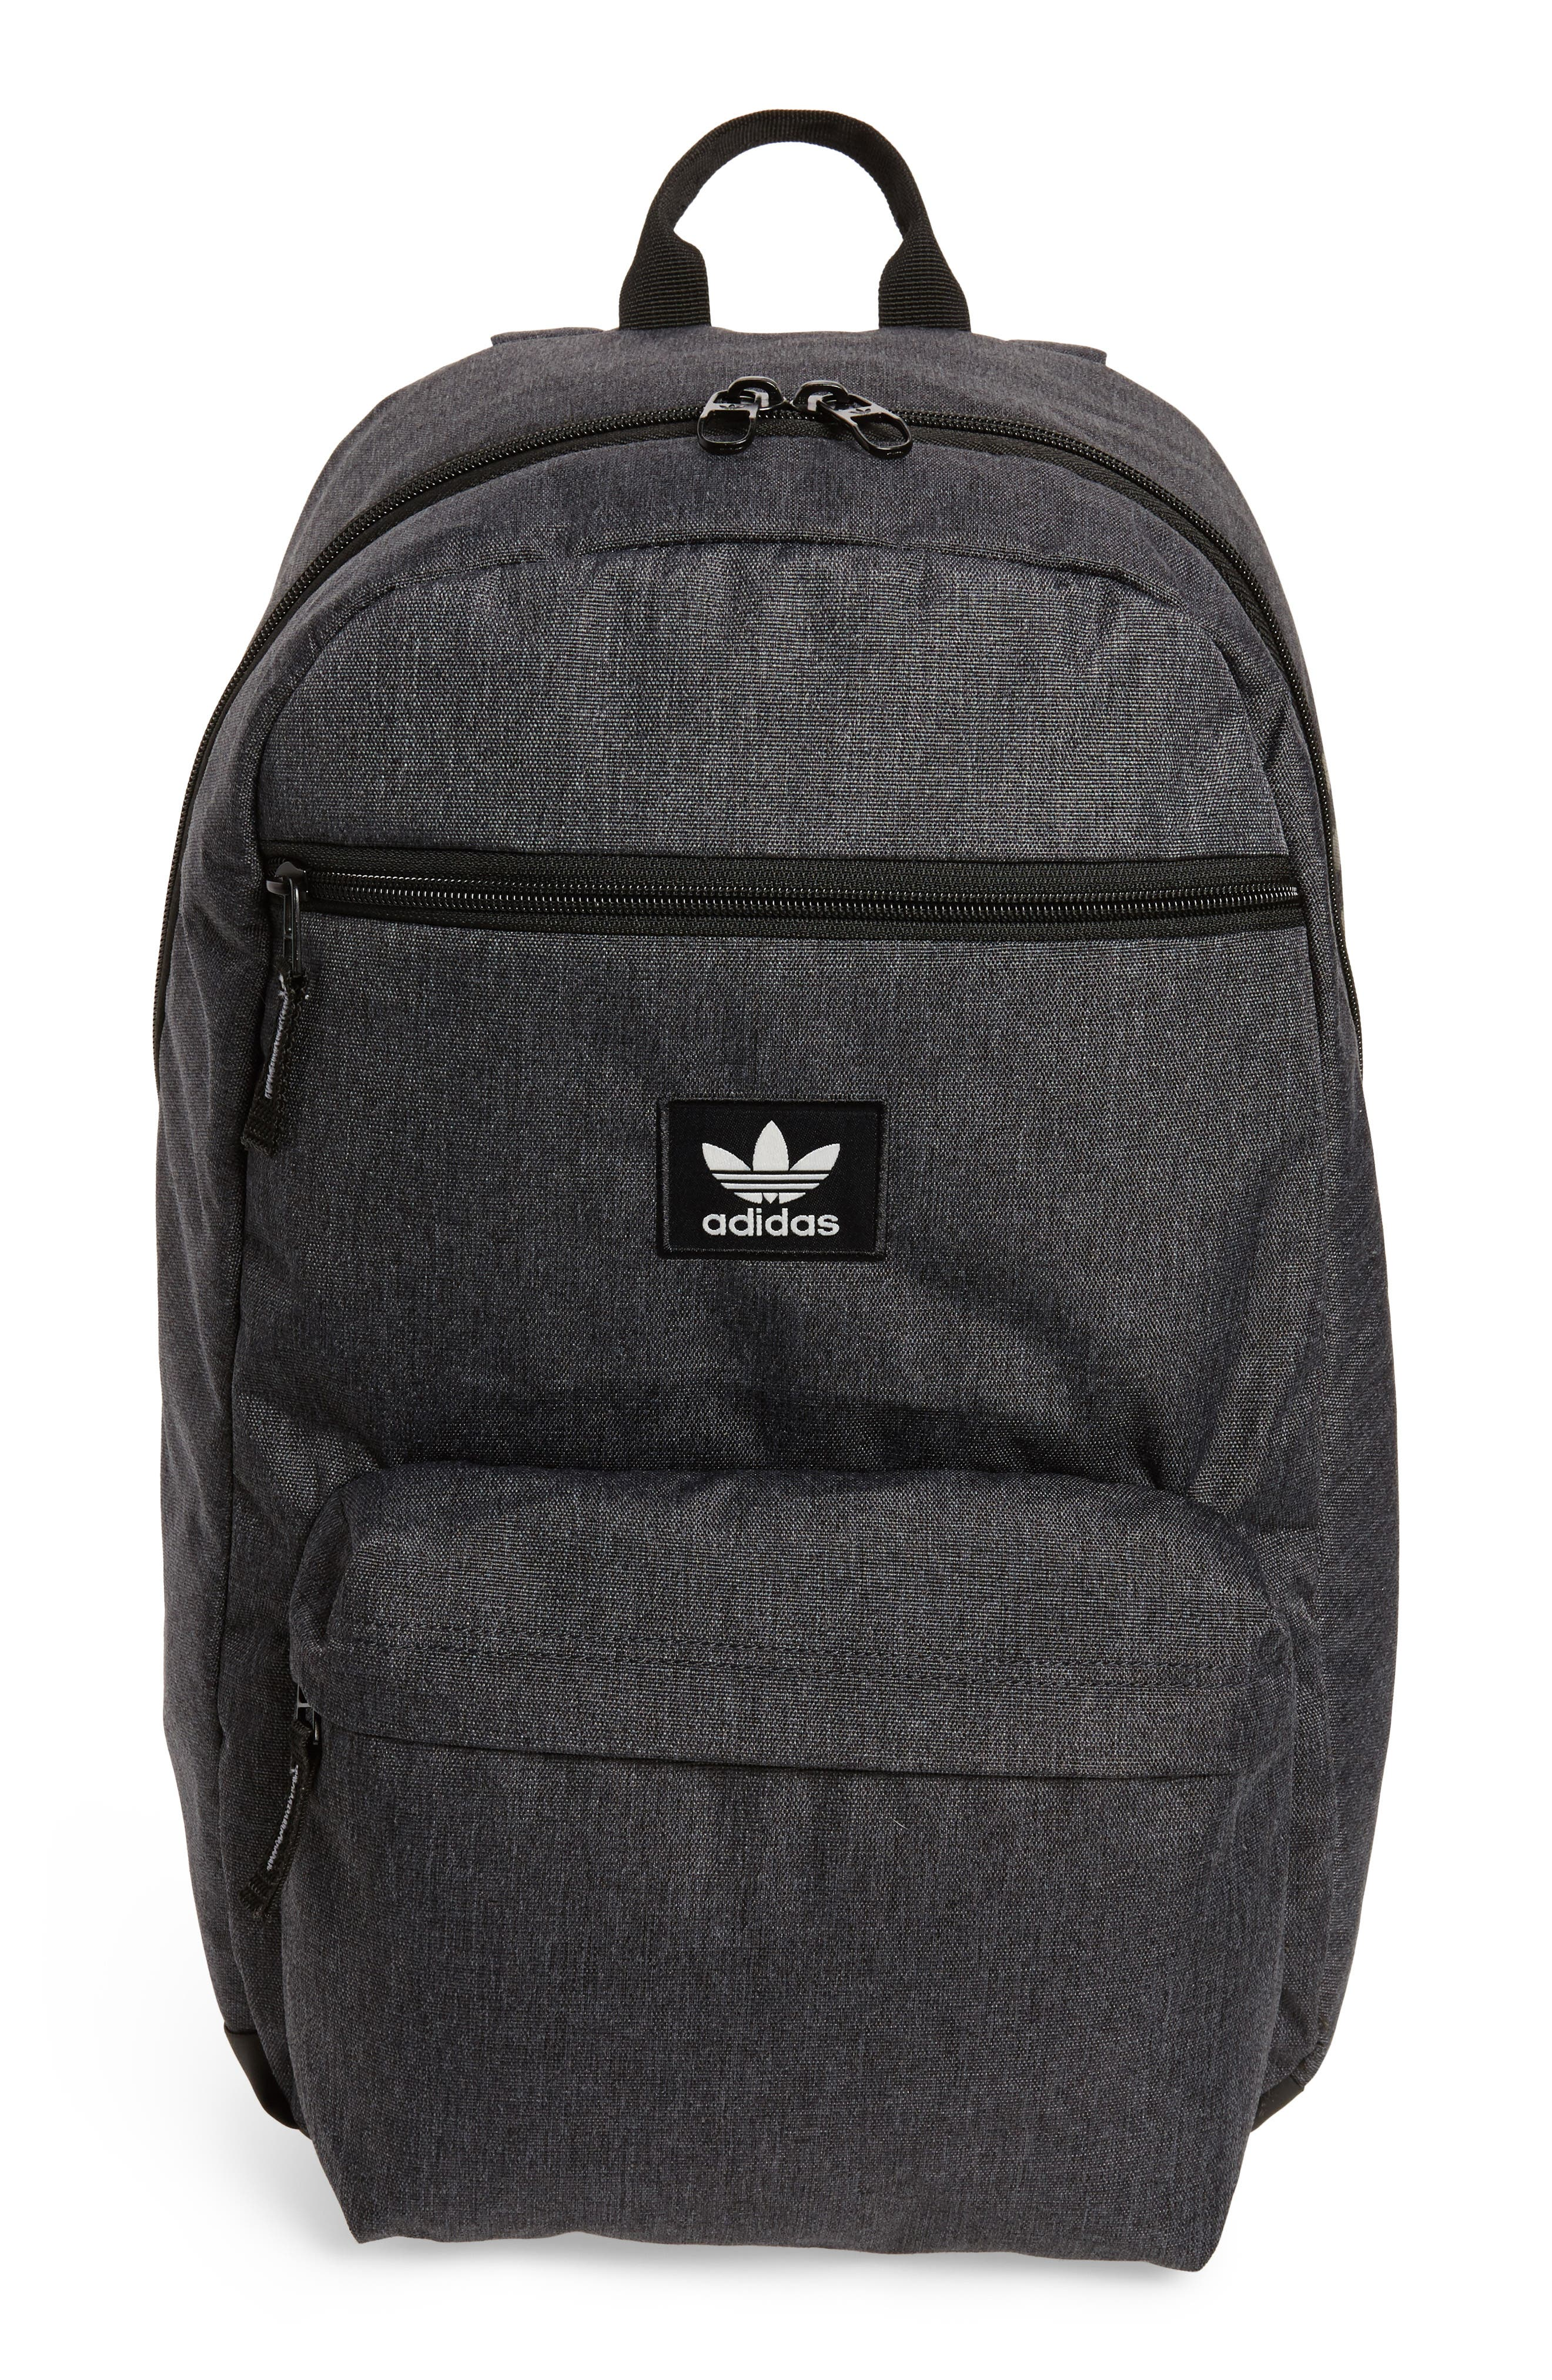 adidas National Plus Backpack,                         Main,                         color, 020